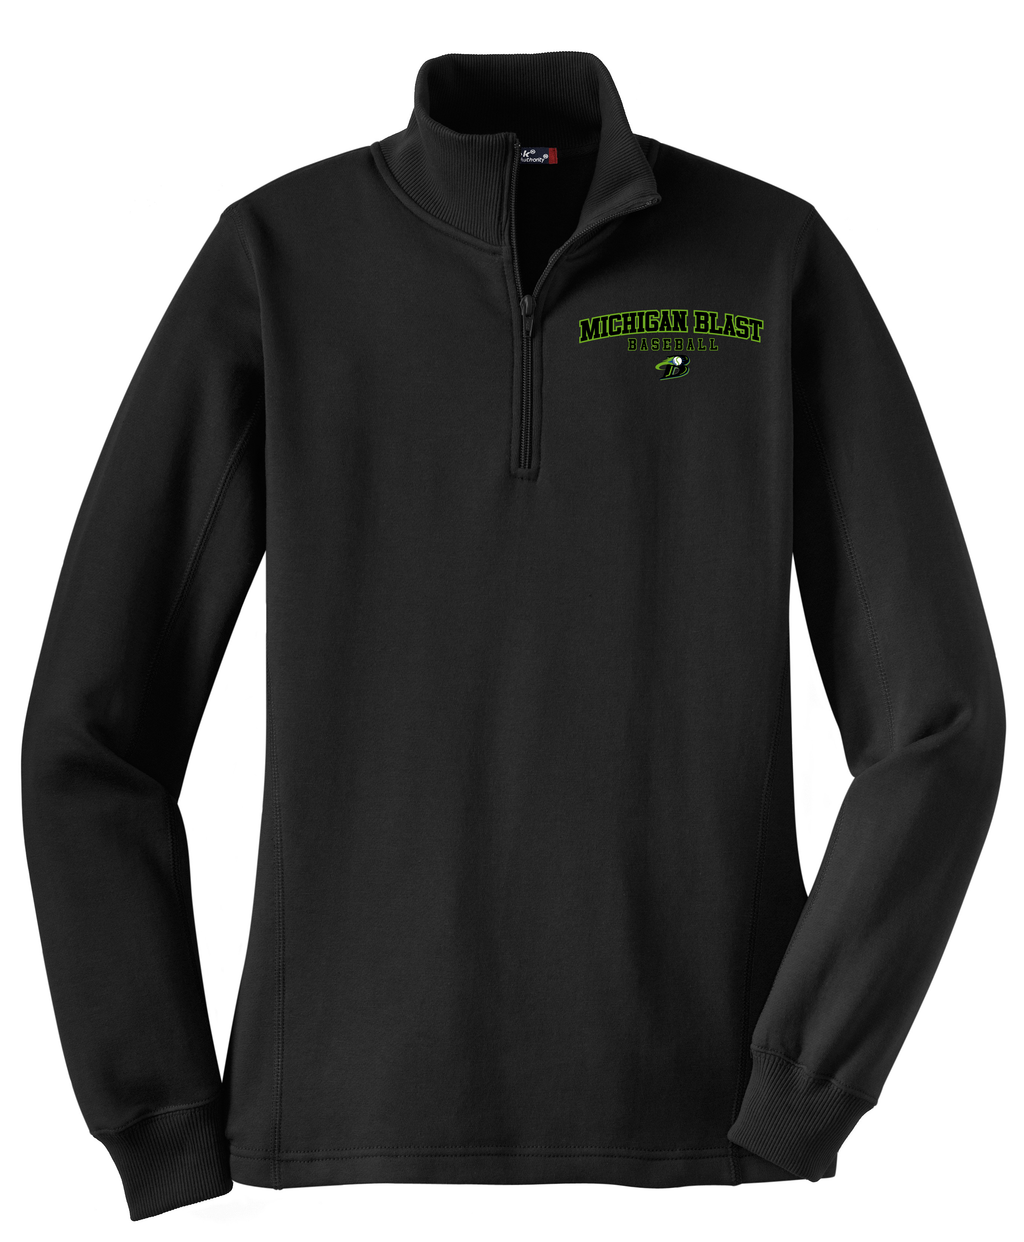 Michigan Blast Elite Baseball  Women's 1/4 Zip Fleece